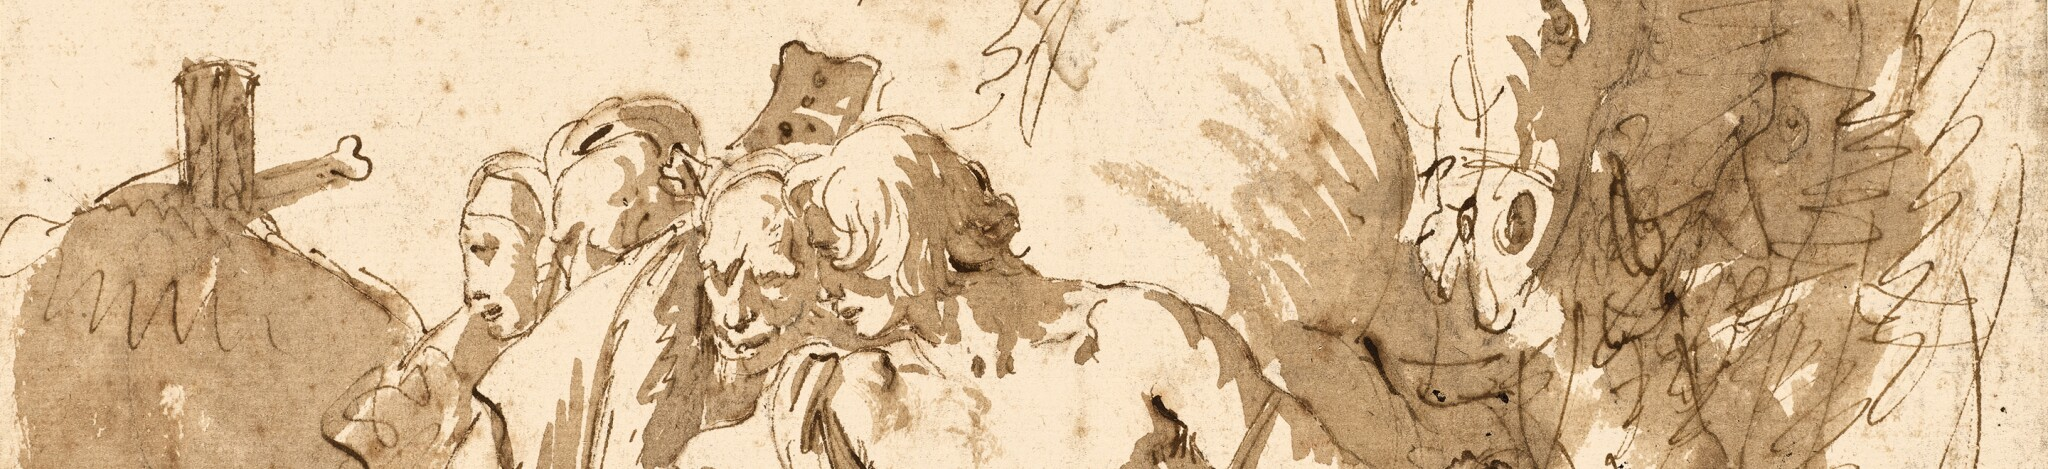 From Taddeo to Tiepolo: The Dr. John O'Brien Collection of Old Master Drawings